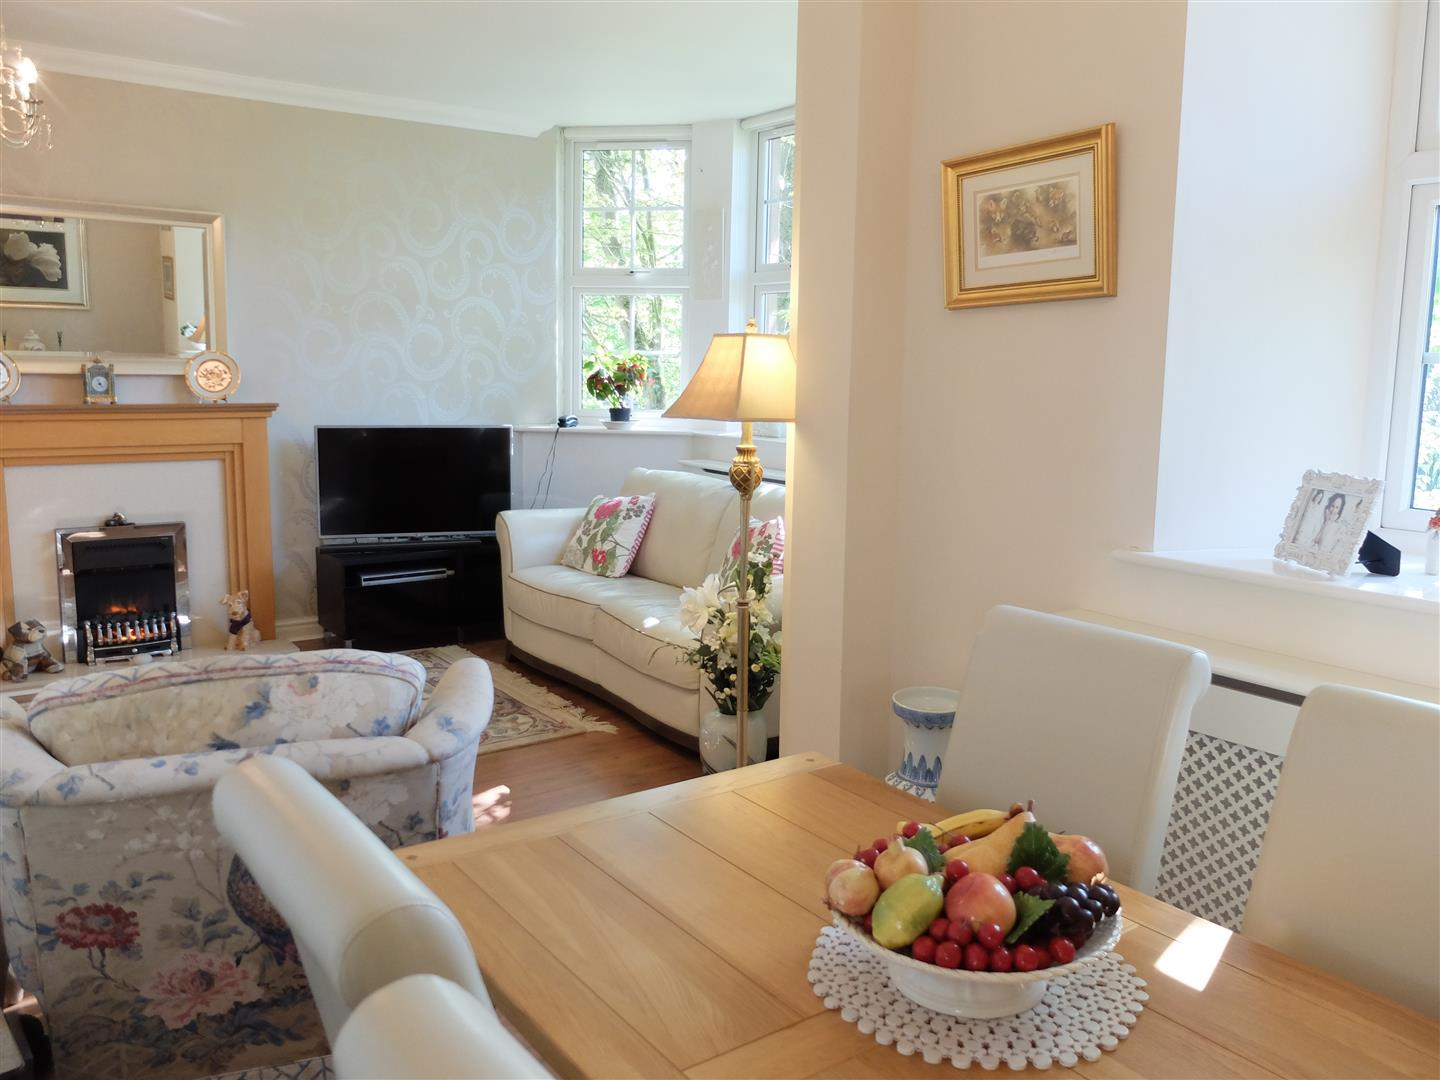 2 Bedrooms Flat On Sale 10 Oval Court Carlisle